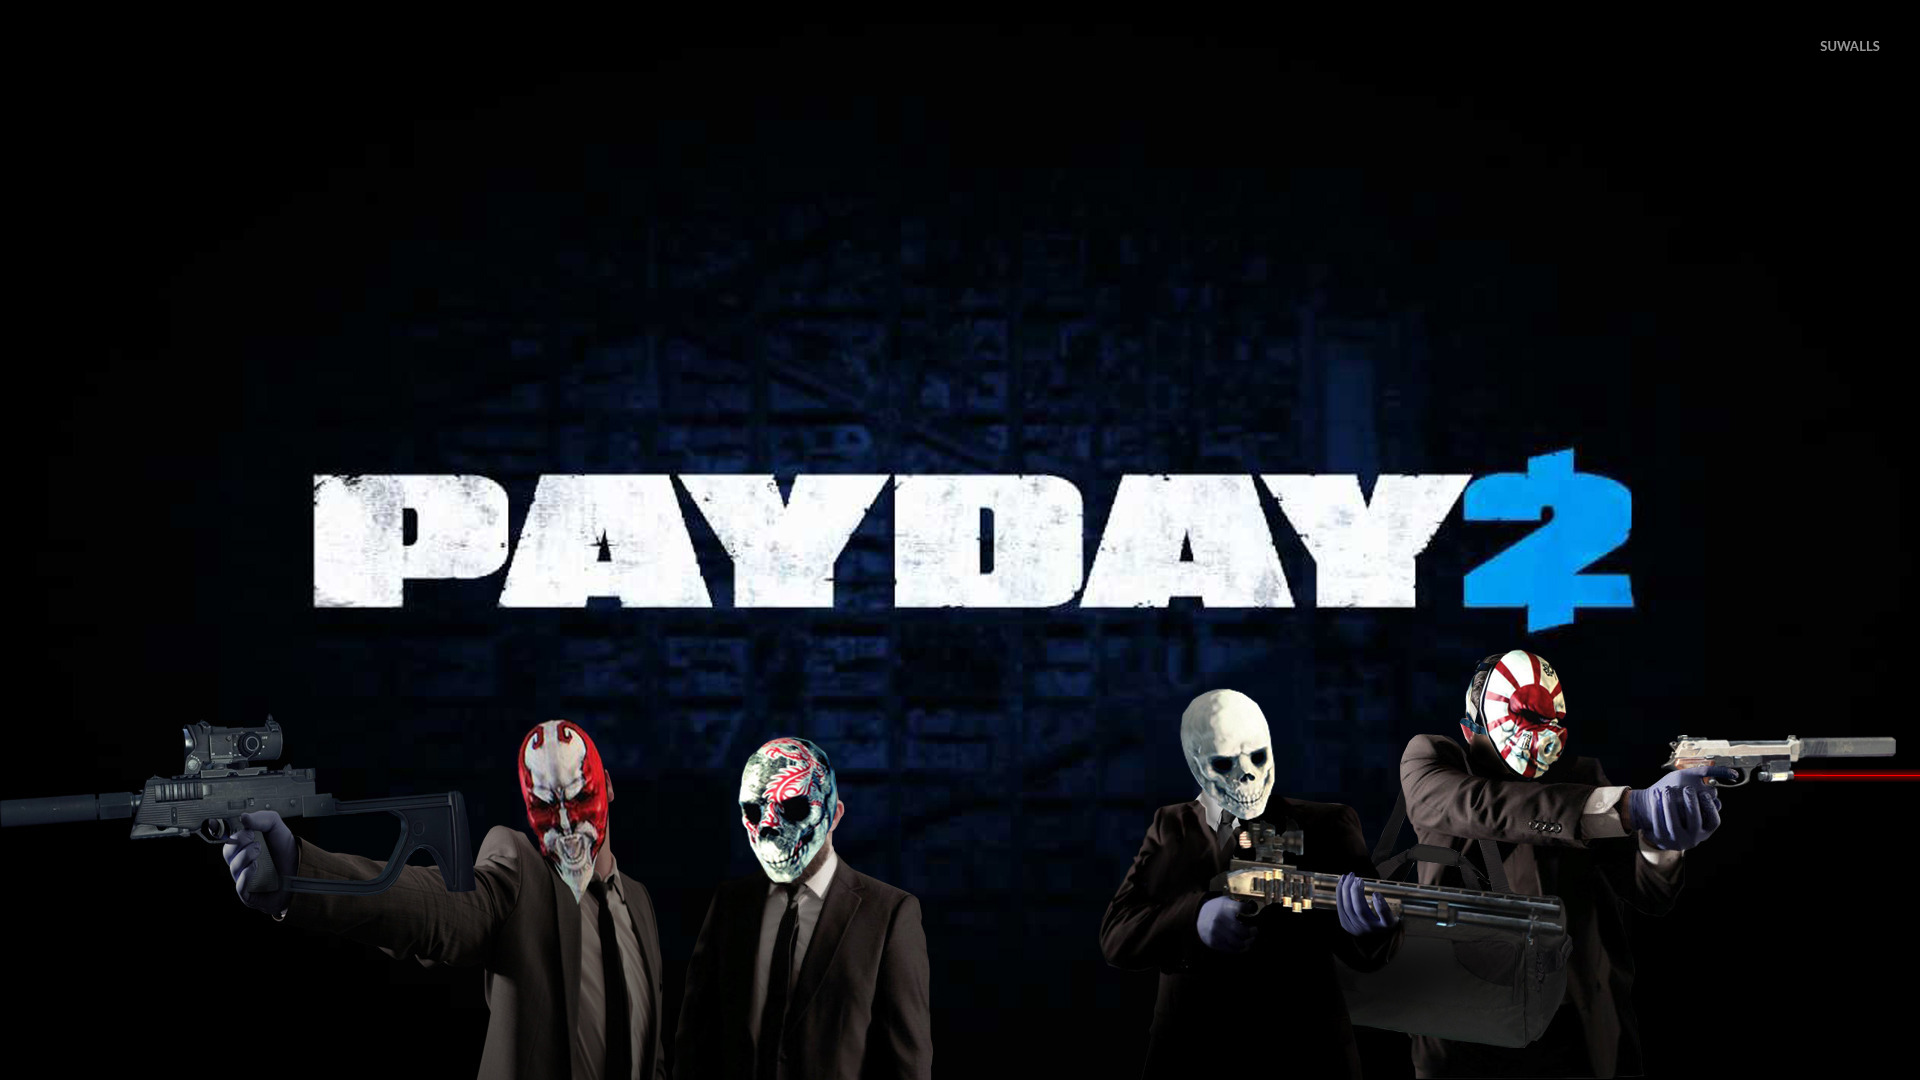 Payday 2 7 Wallpaper Game Wallpapers 22947